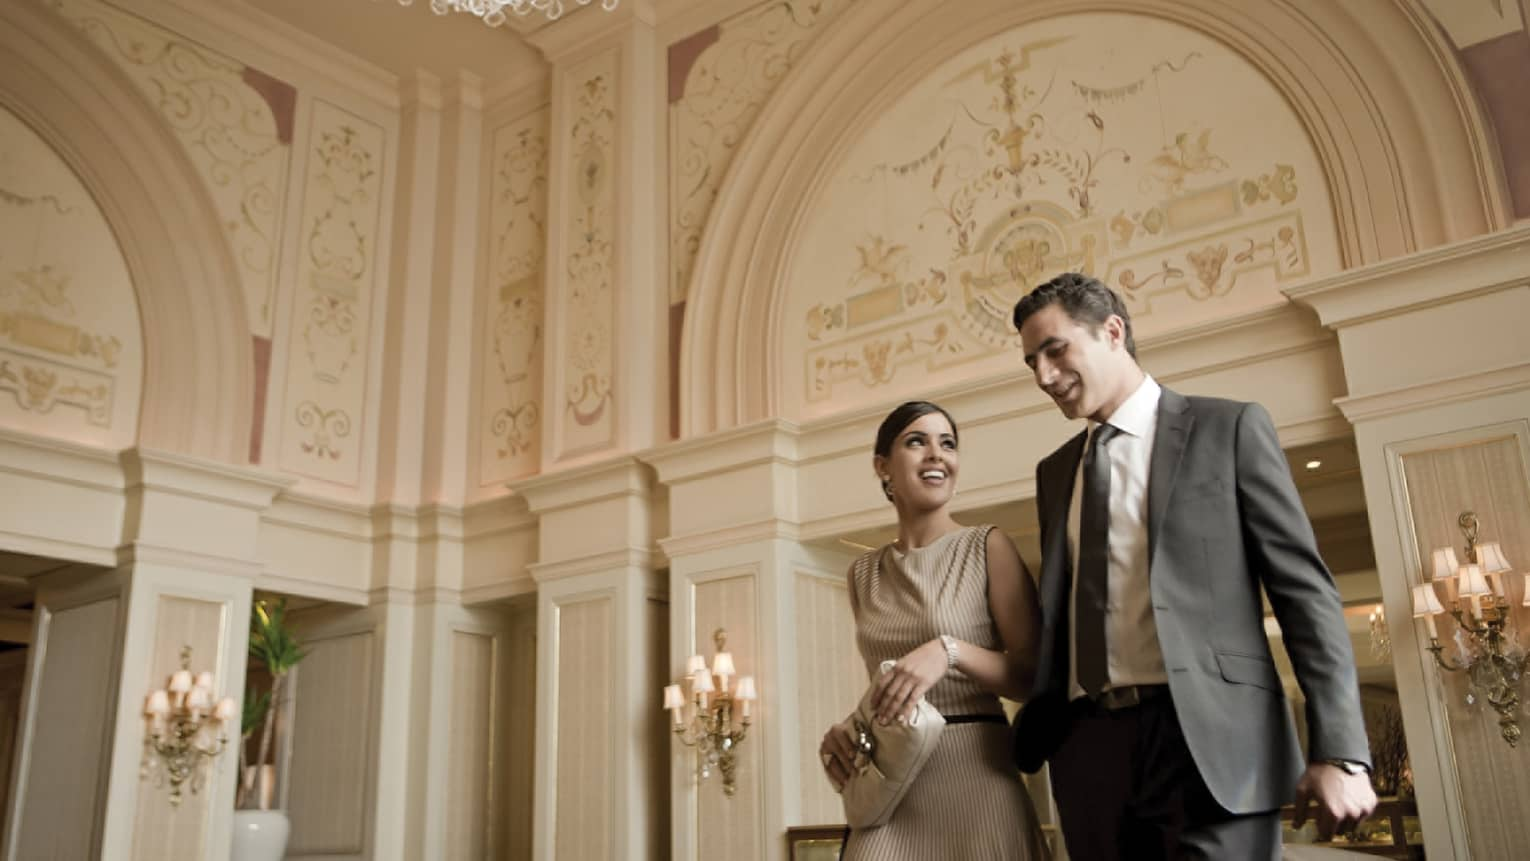 Smiling woman and man in business attire walk through hotel lobby